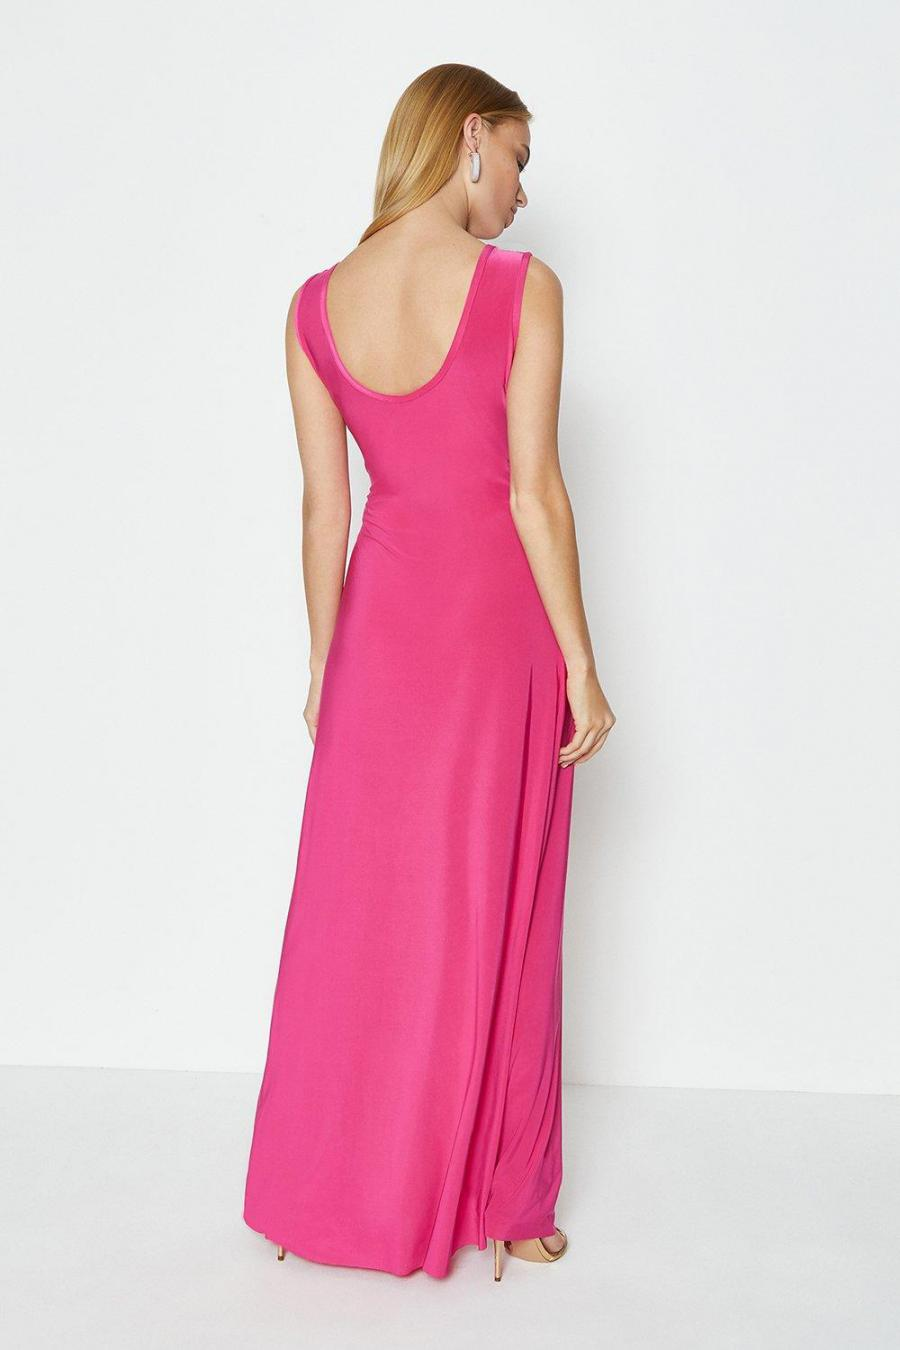 Coast Maxi Dresses | Womens Cross Over Sleeveless Maxi Dress Cerise